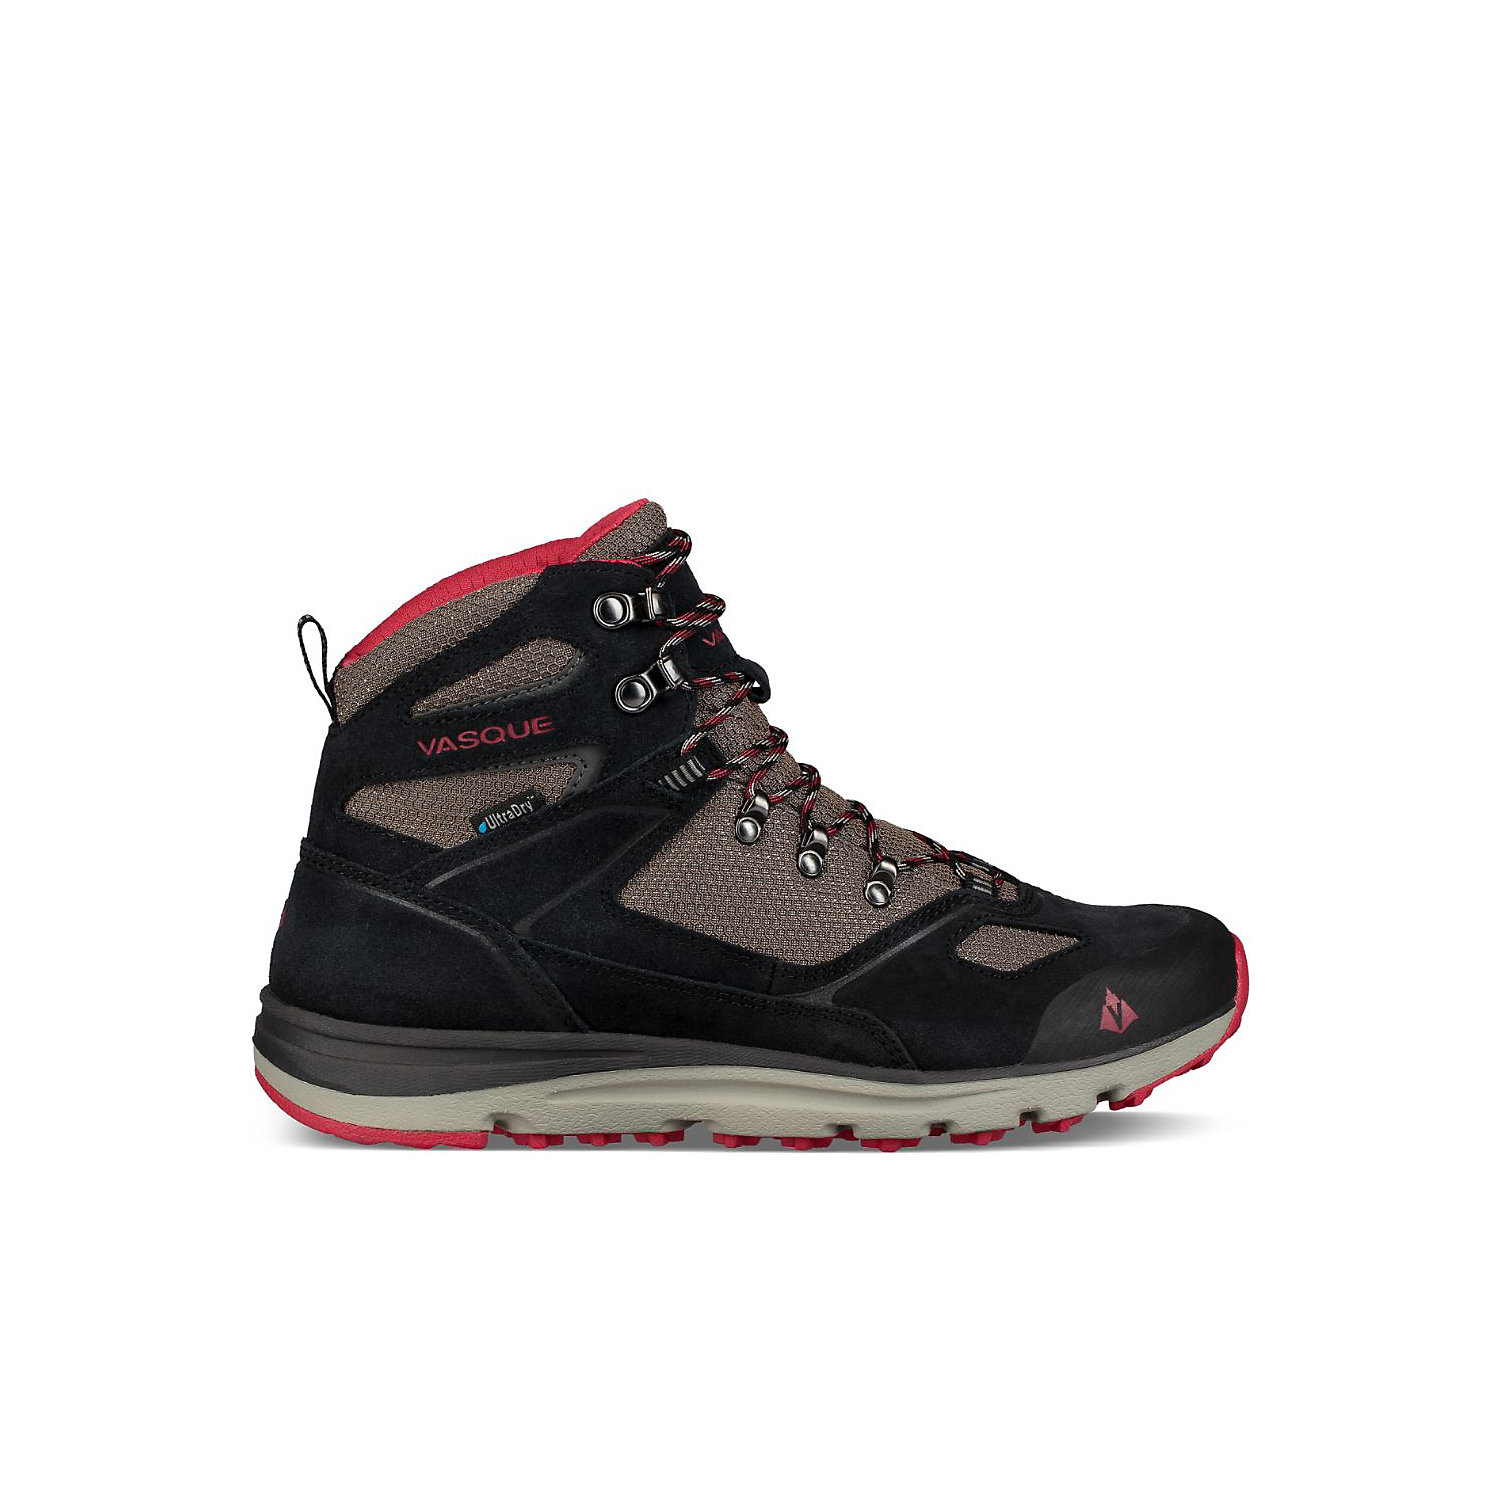 9eb01ada1a0 Vasque Women's Mesa Trek Boot